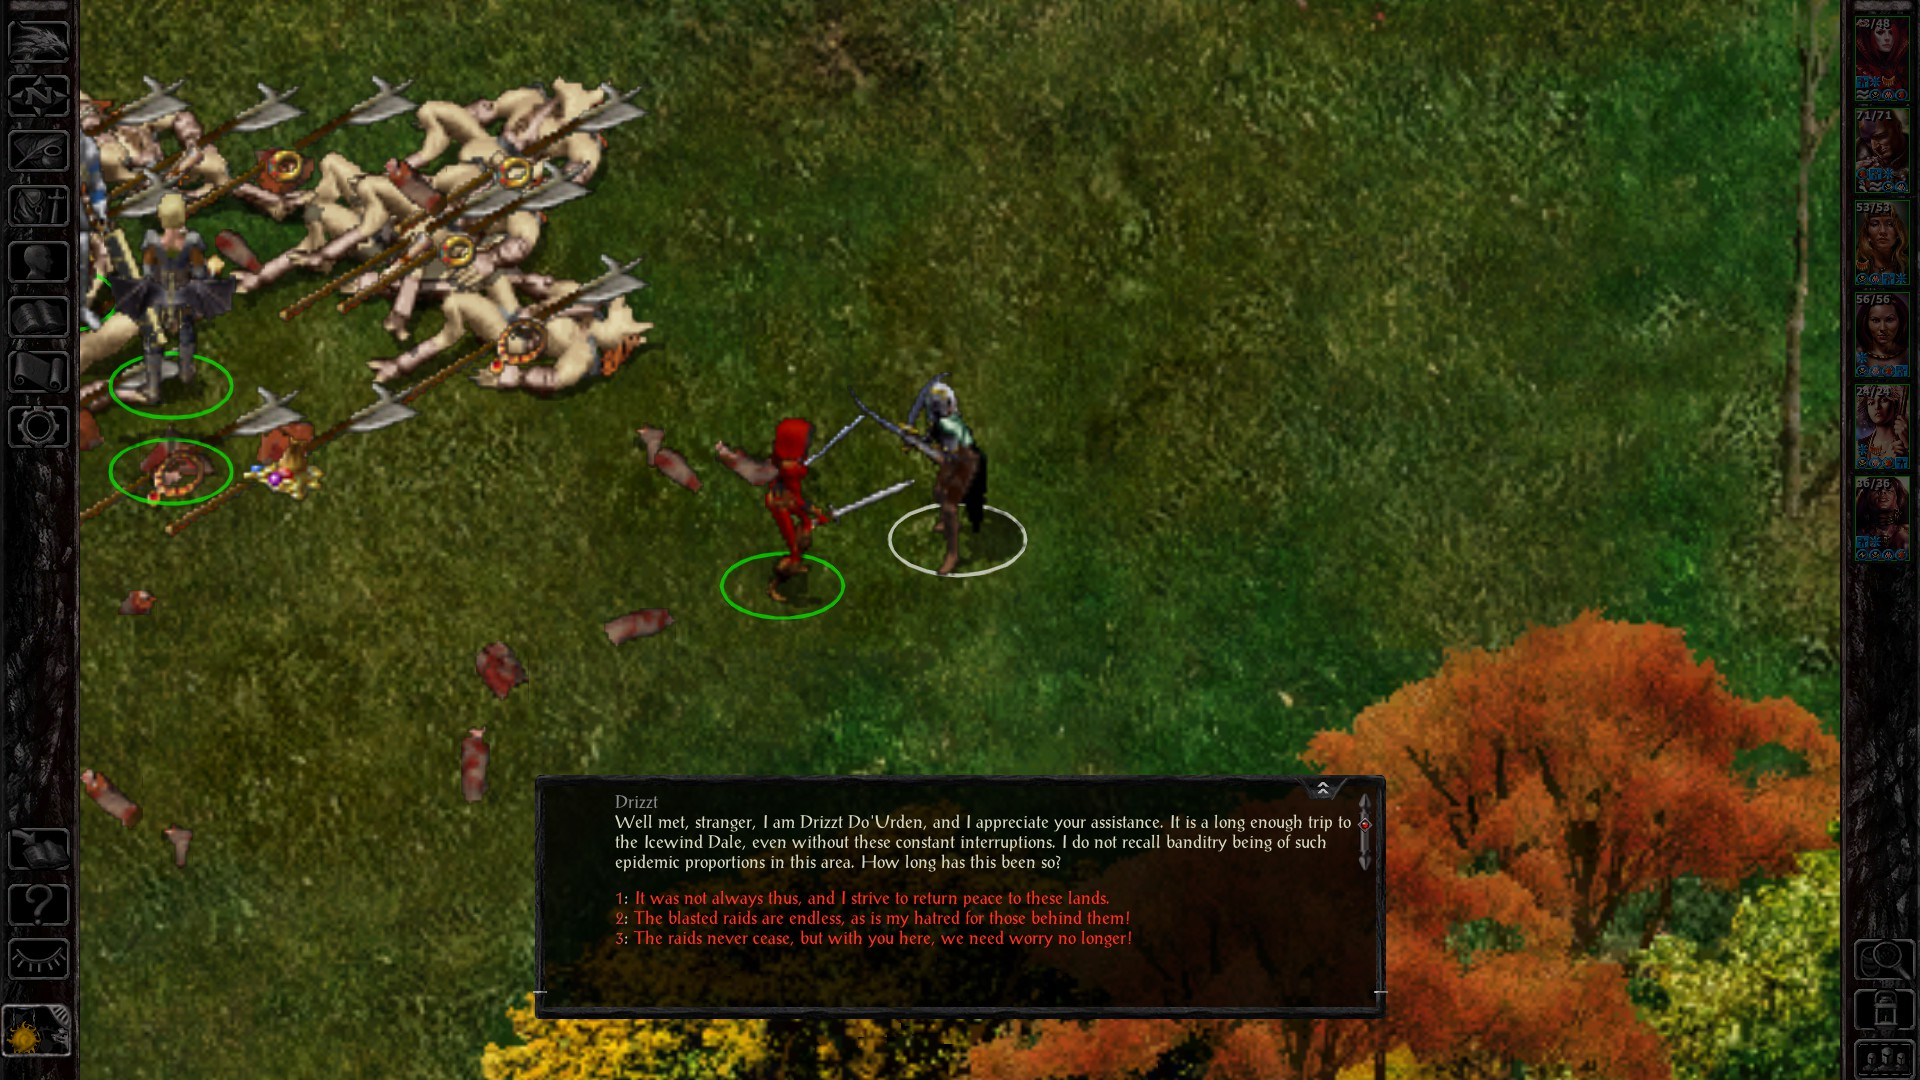 A major update for the Baldur's Gate and Icewind Dale enhanced editions is in beta